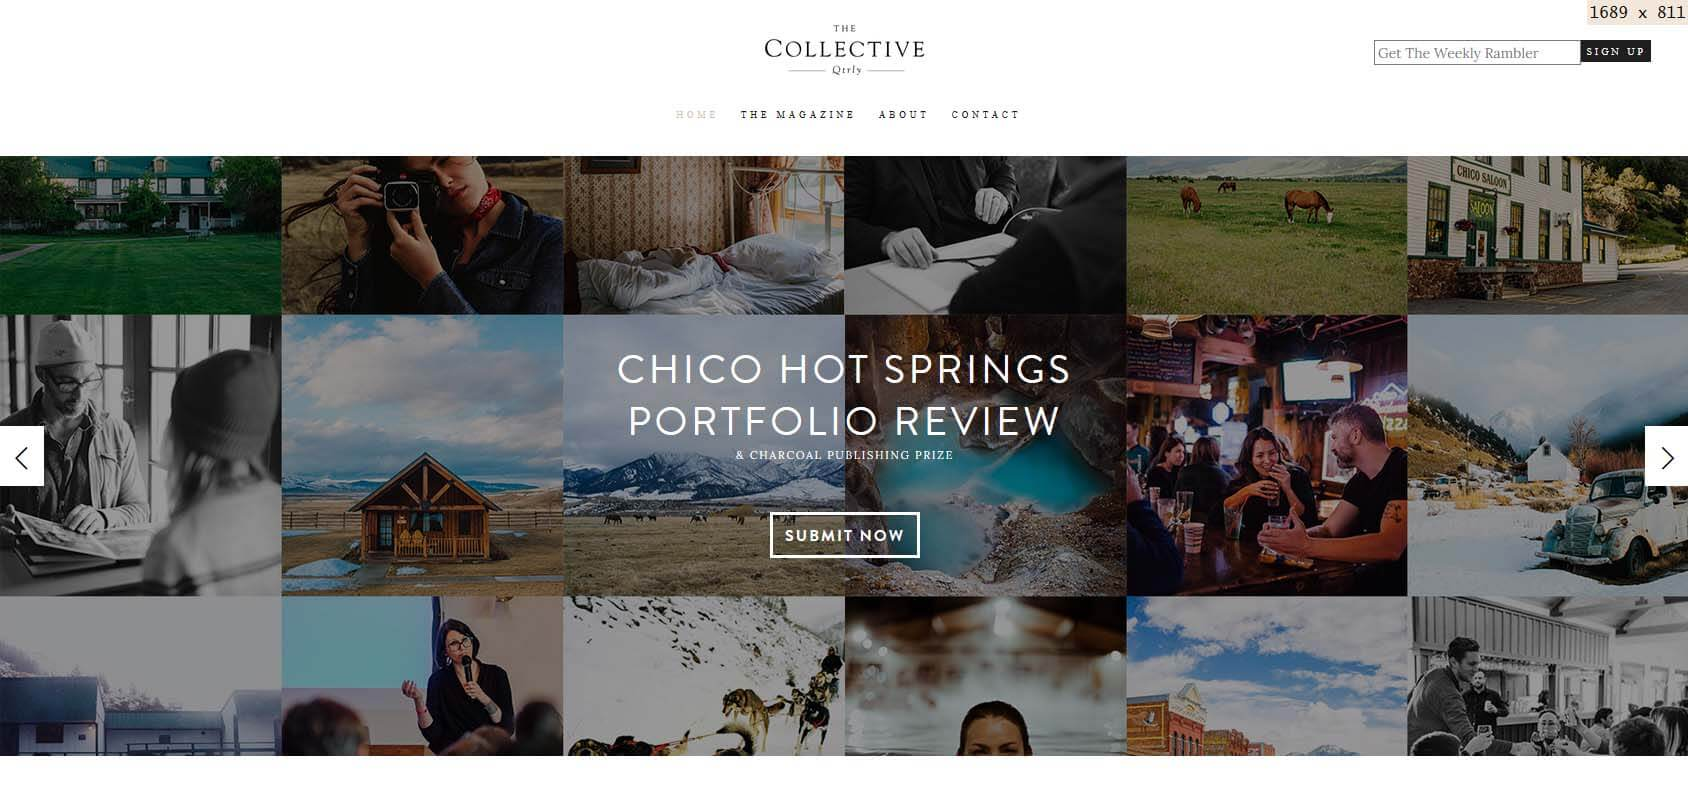 The Collective Quarterly Homepage